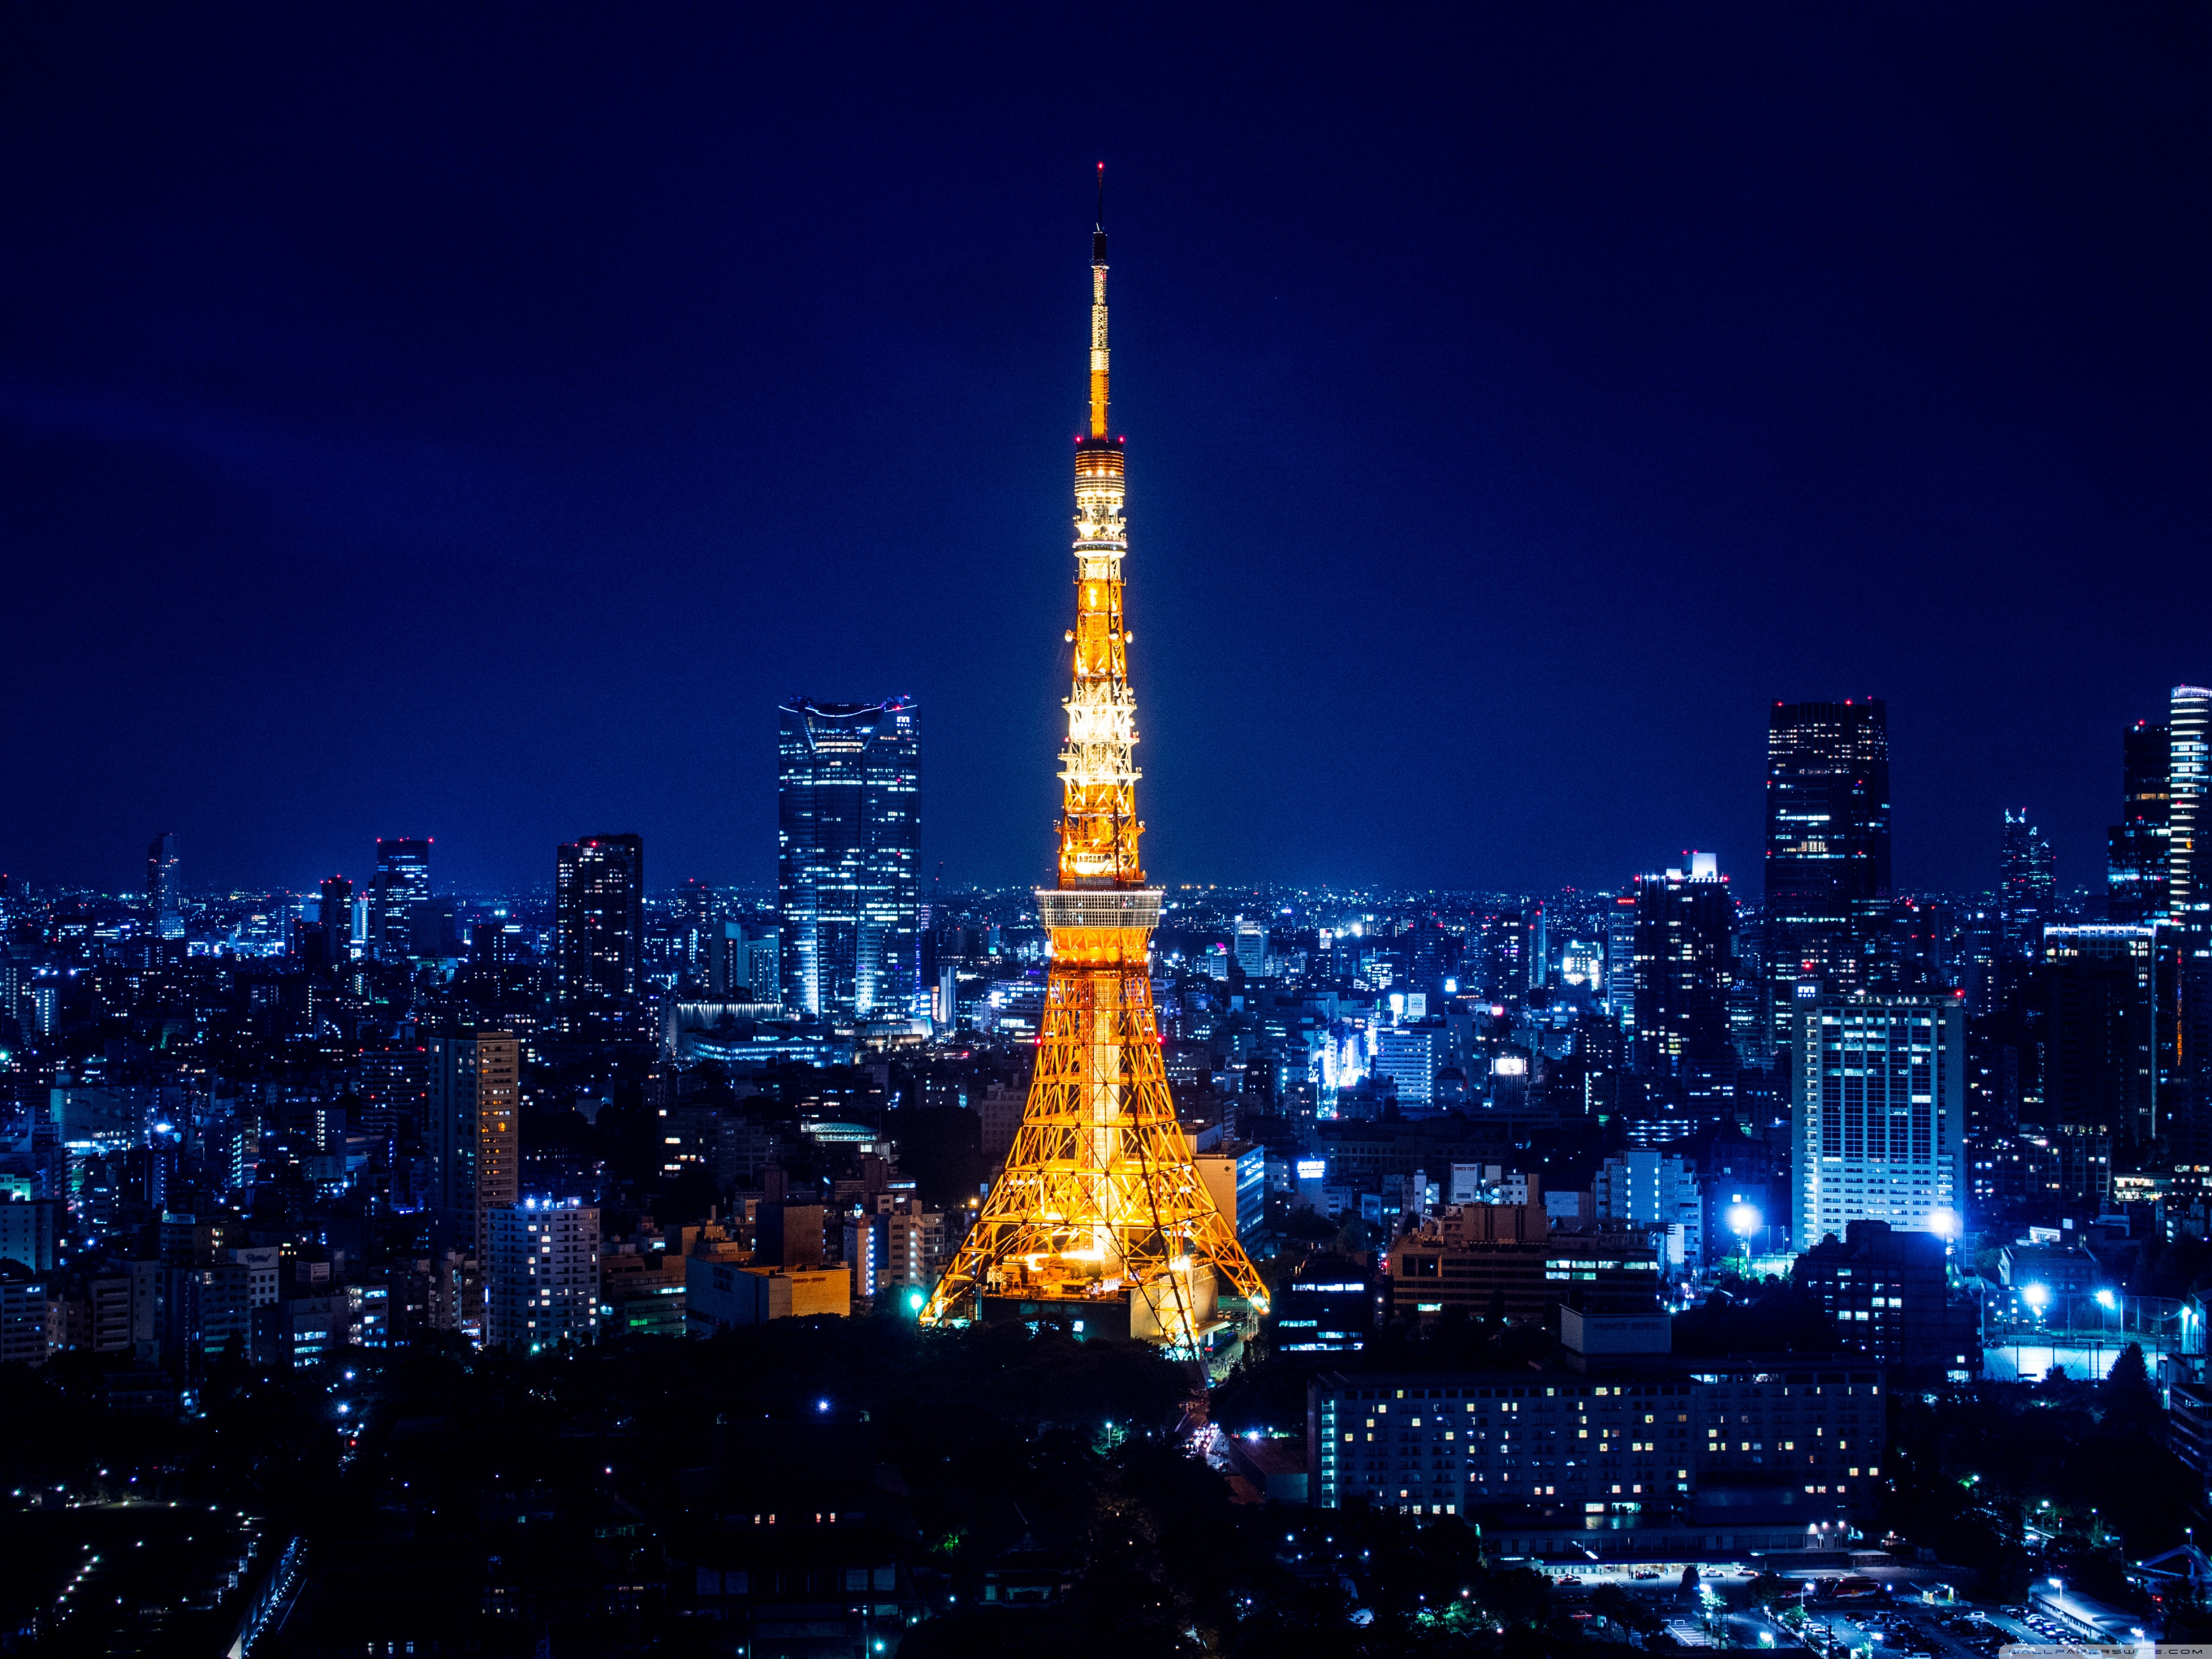 city Lights Tokyo tower Big town wallpapers and images   wallpapers 4096x3072